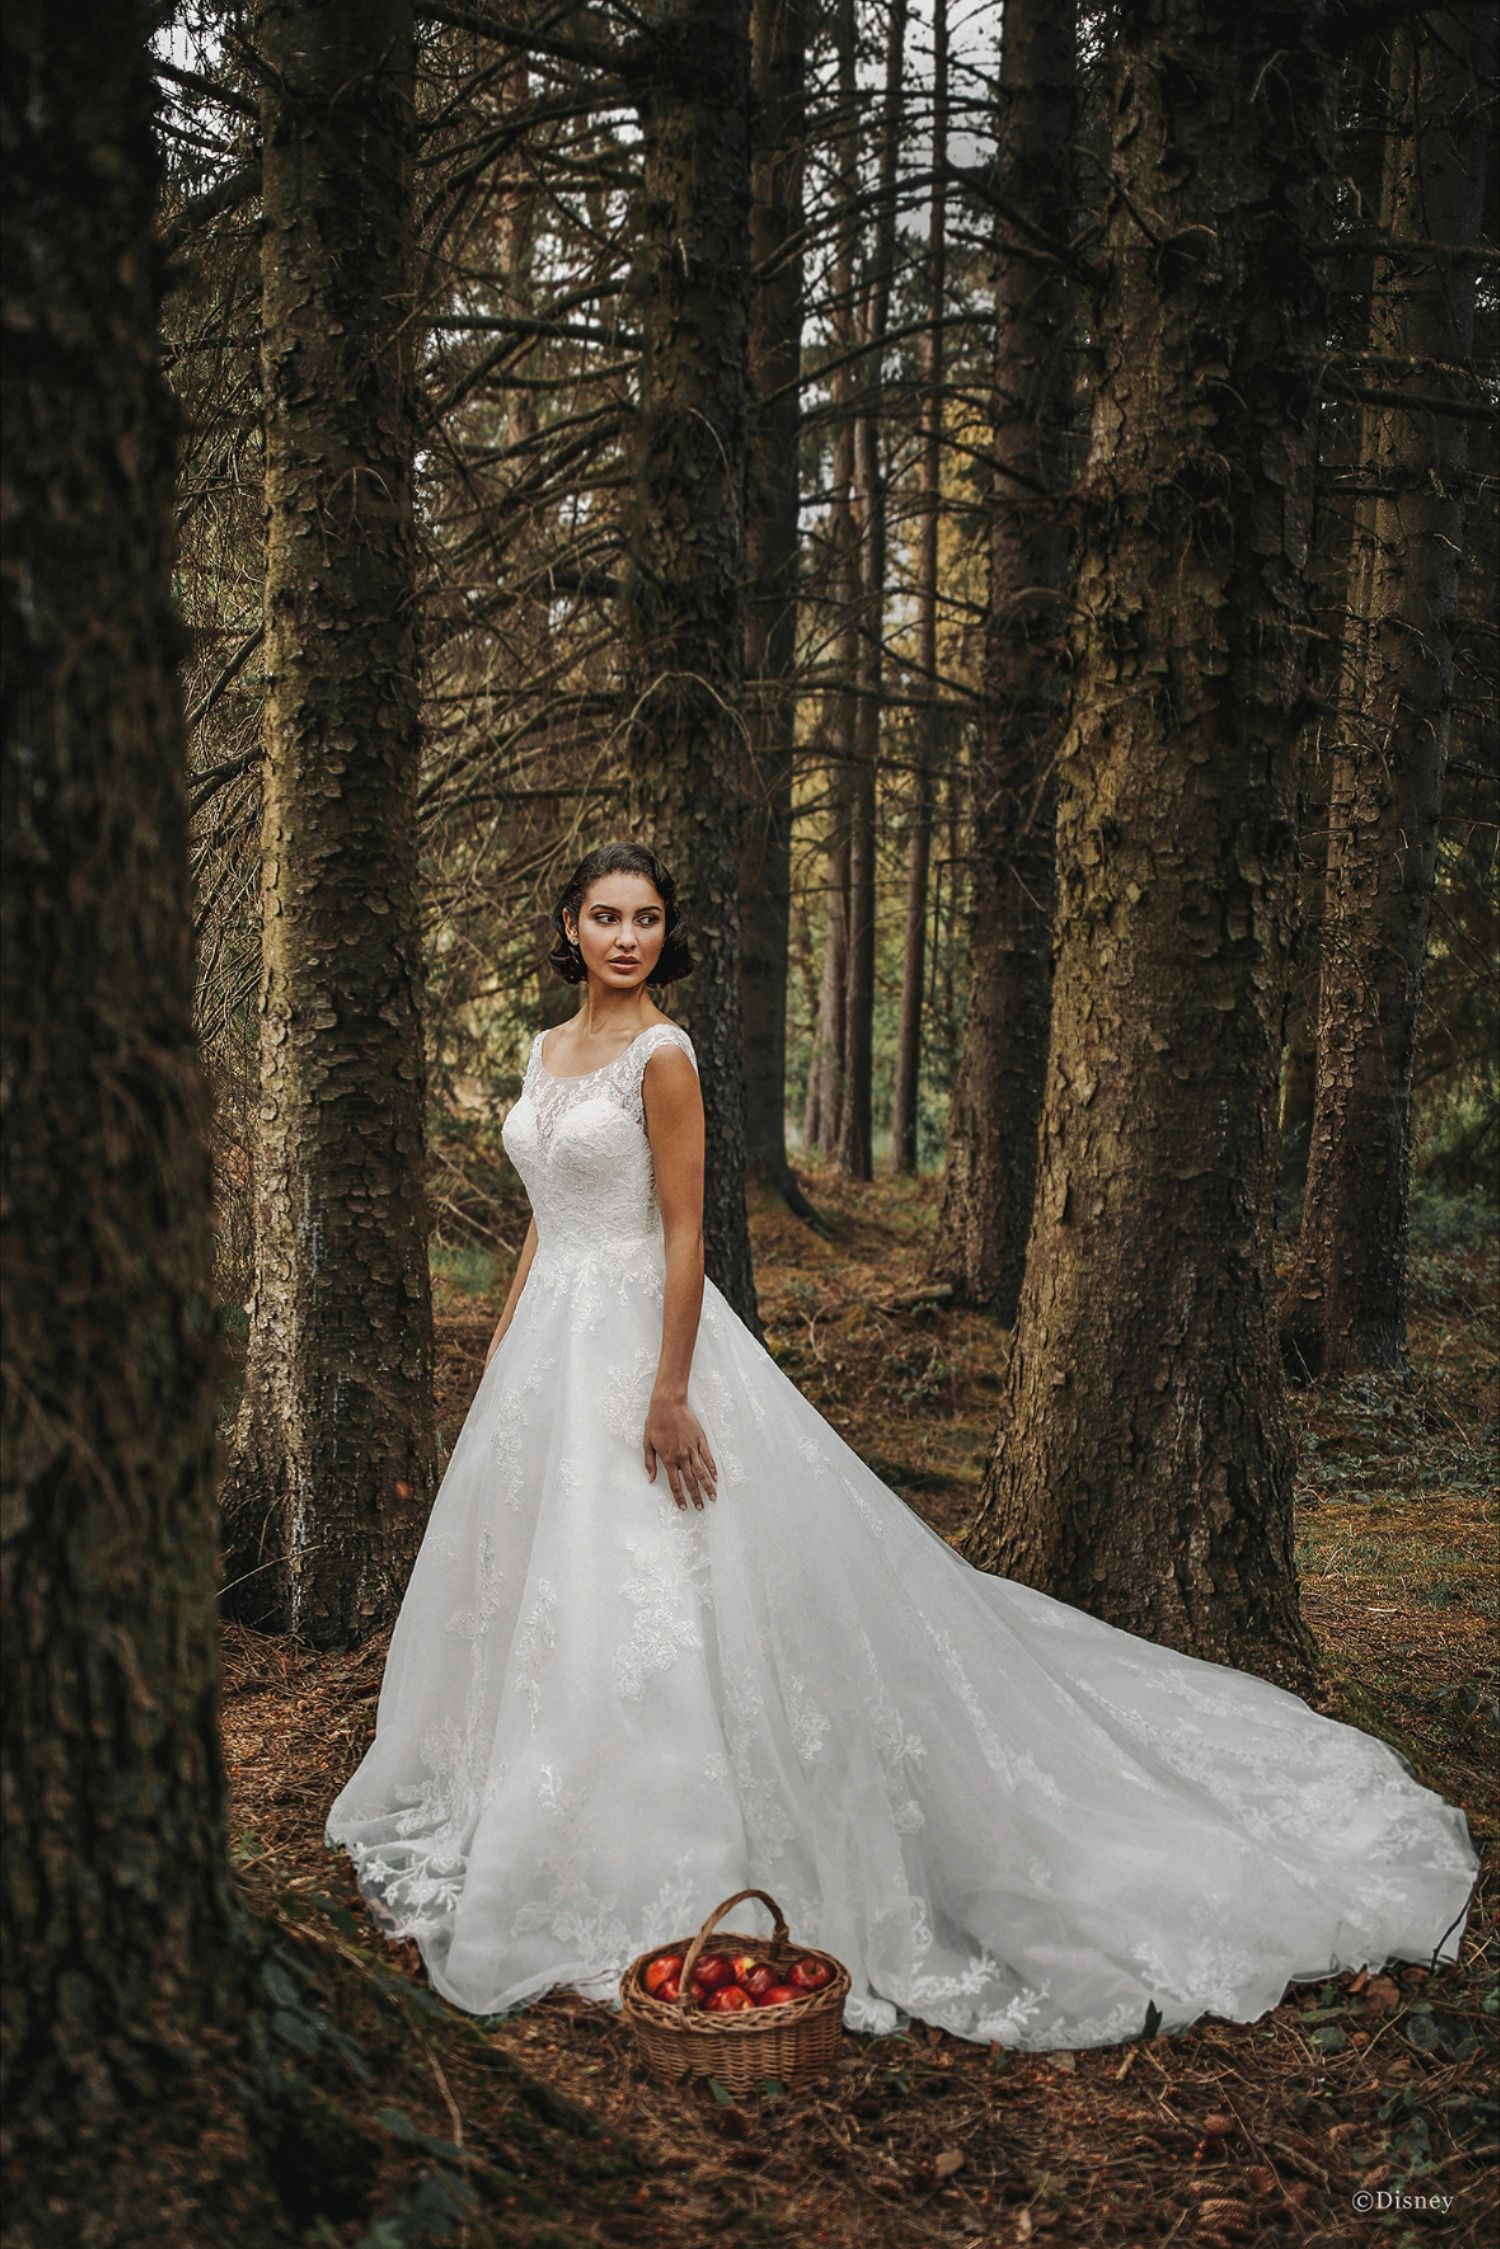 The Snow White Wedding Gowns The Bridal Collection Disney Wedding Dresses Disney Wedding Dress Collection Allure Bridal [ 2249 x 1500 Pixel ]